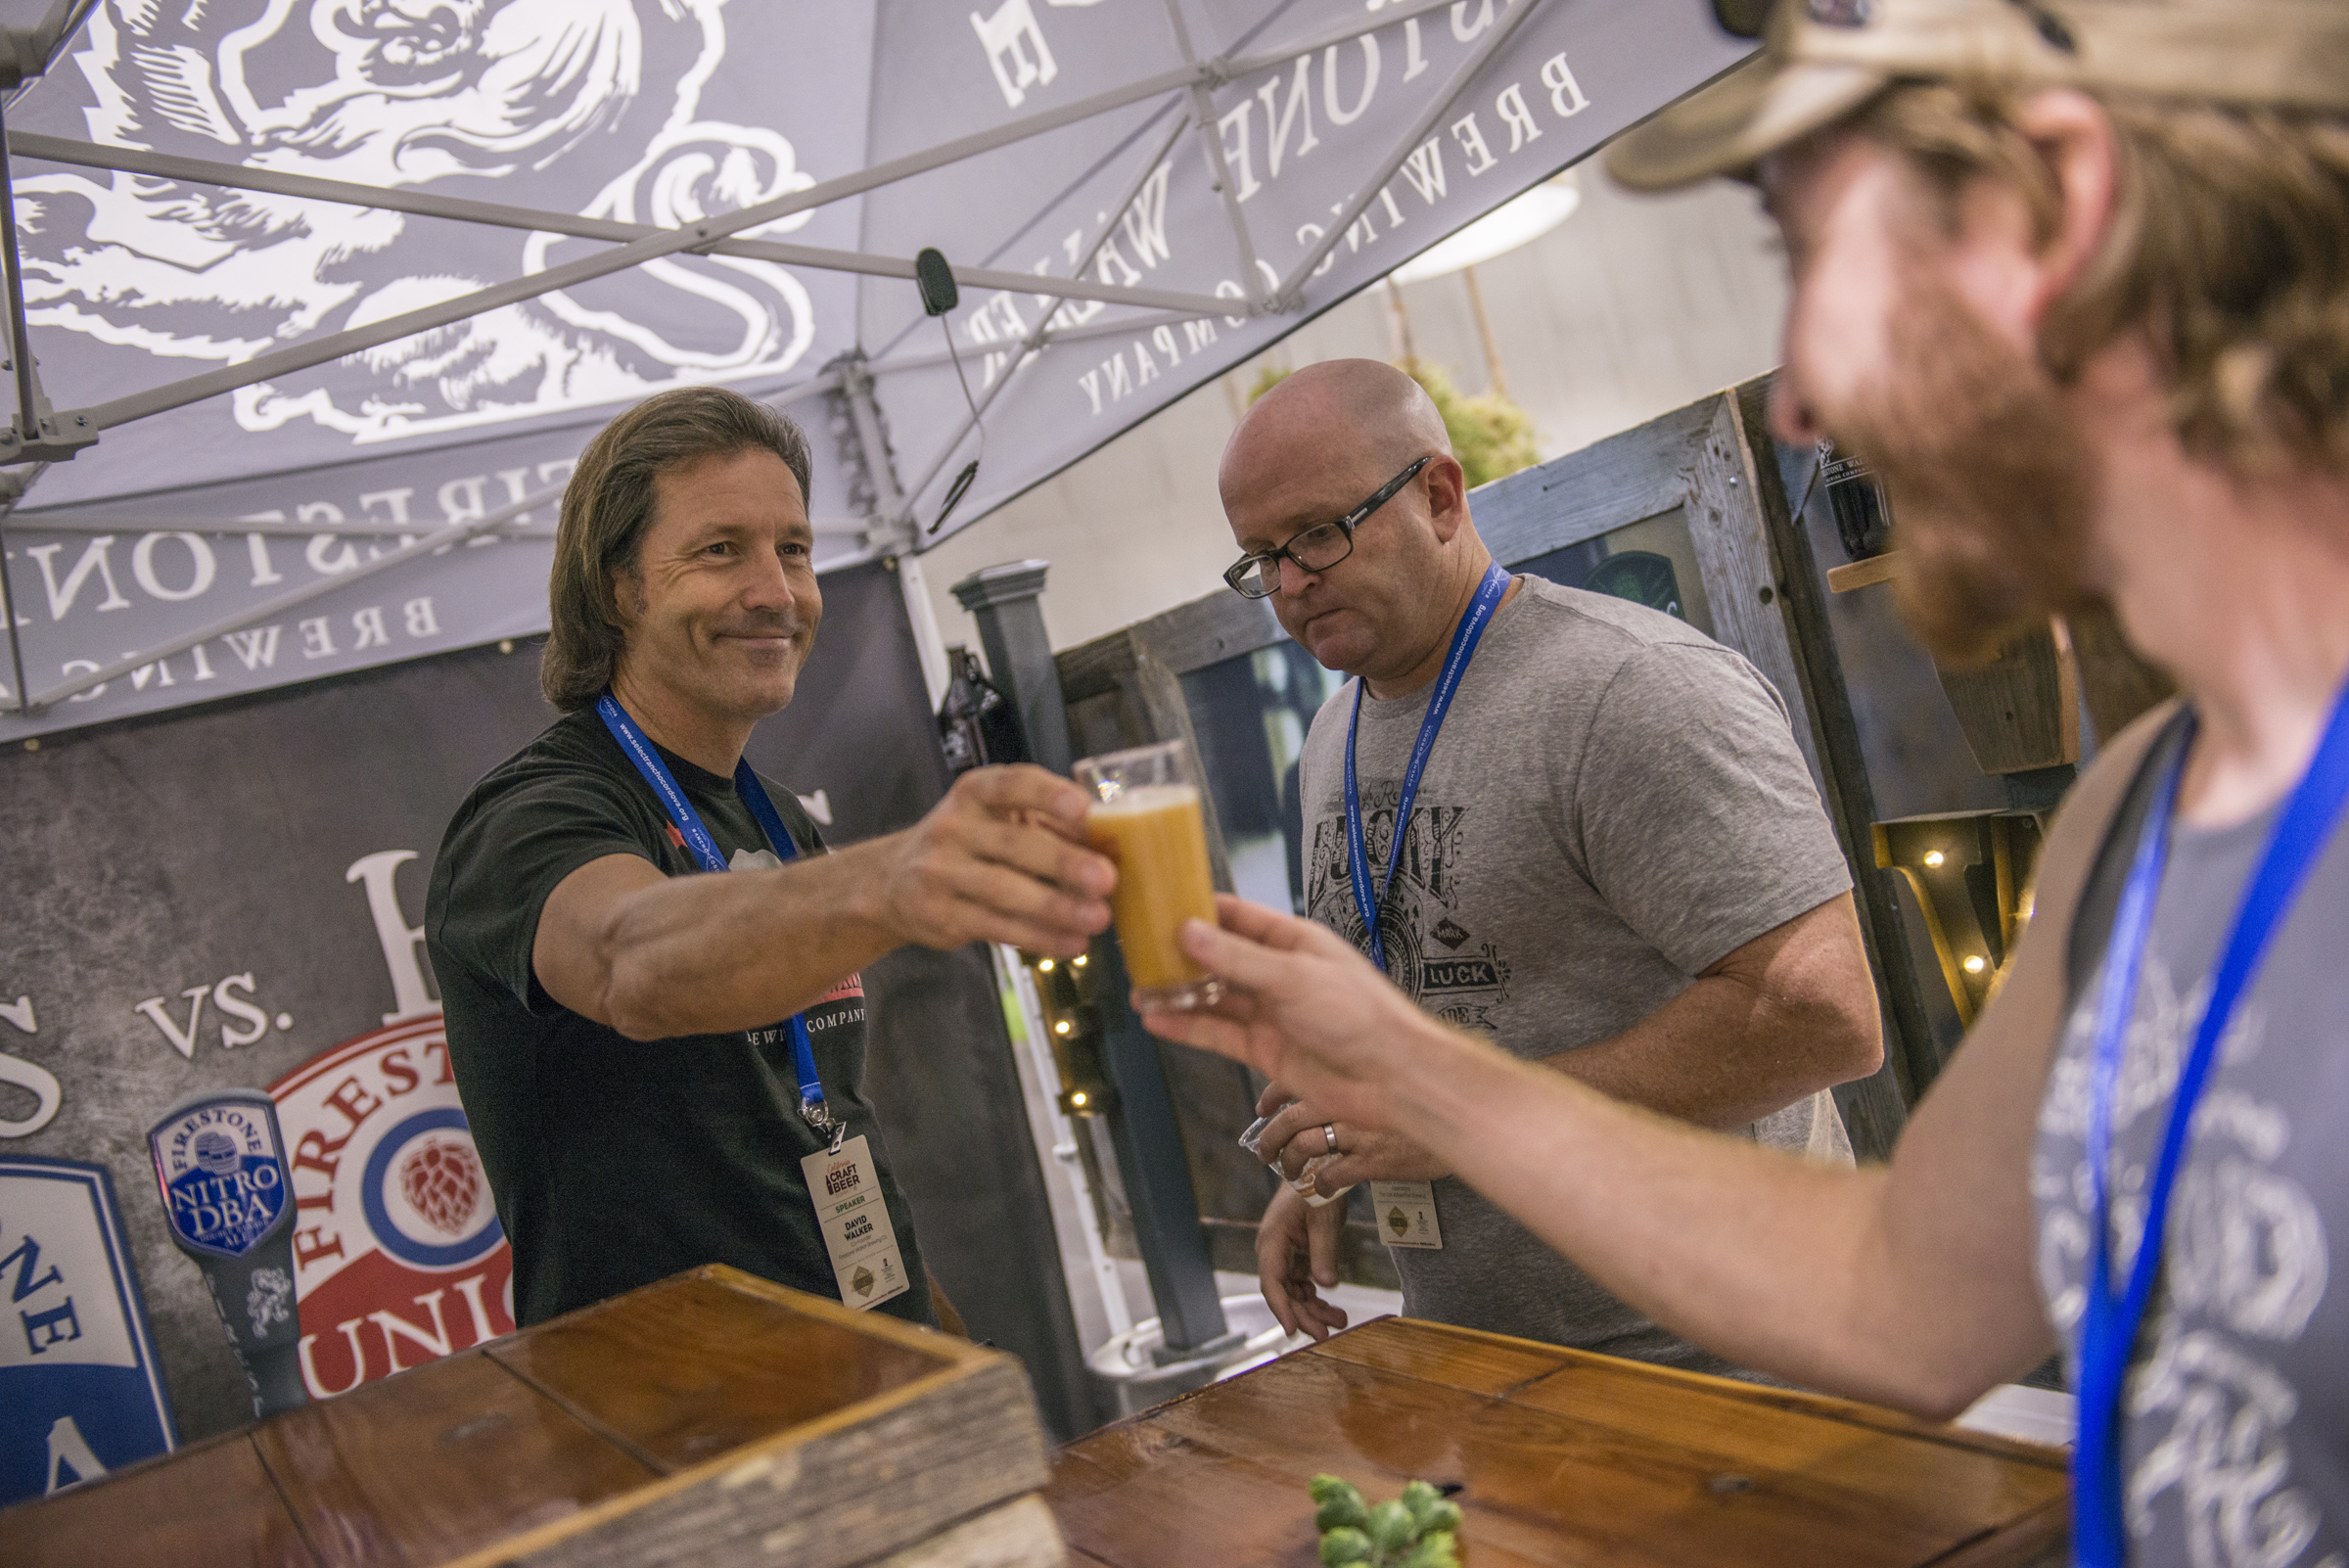 I Love Craft Beer – Should I Go to the Summit?